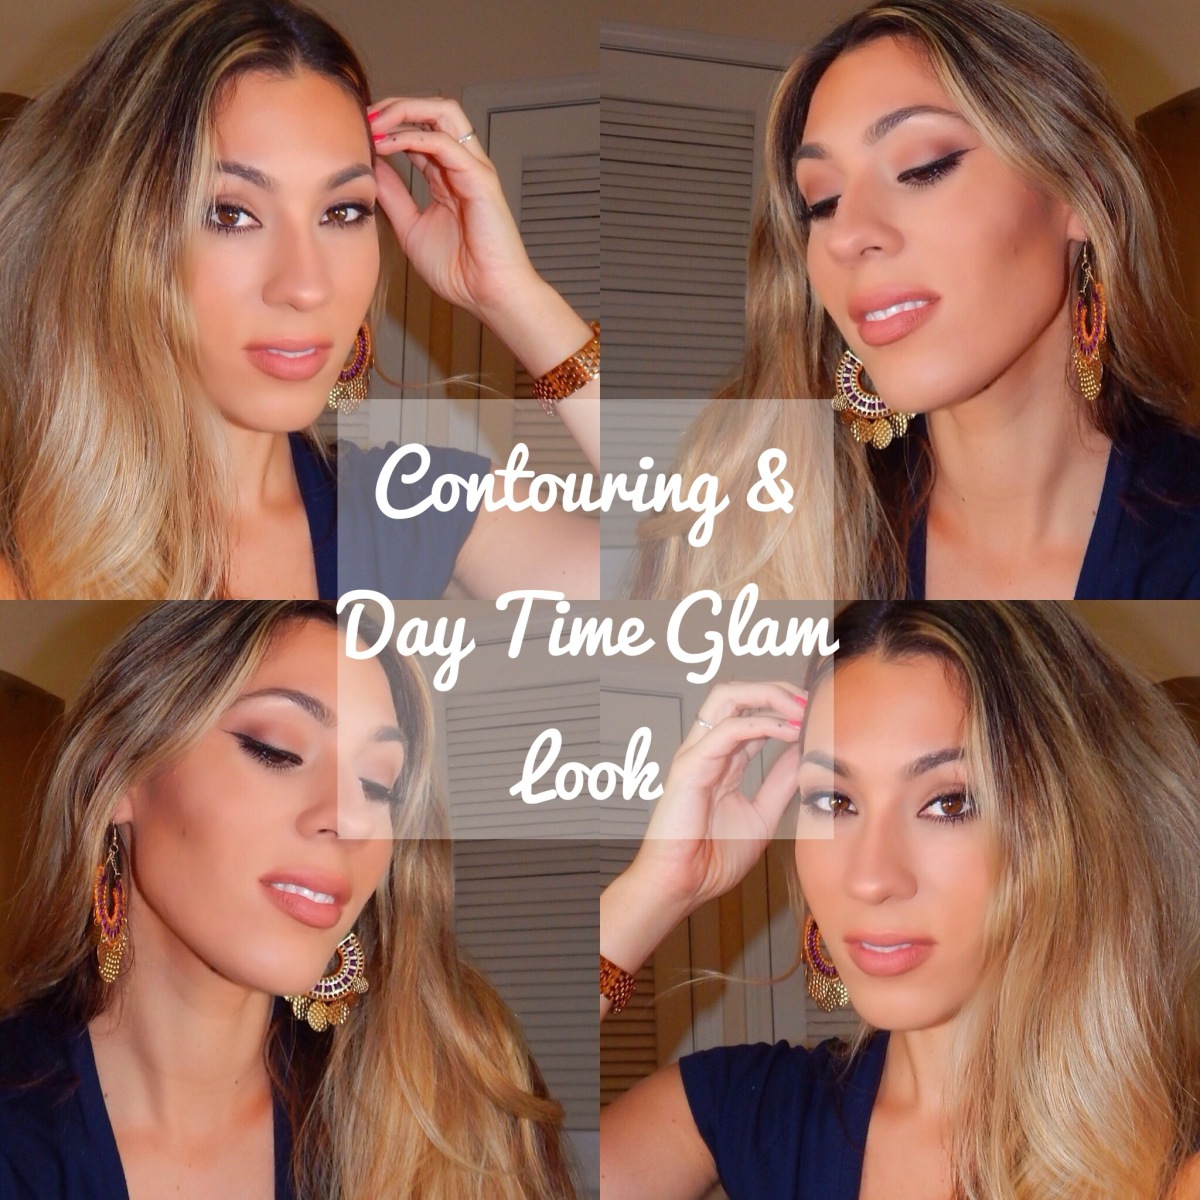 Contouring & Day Time Glam Makeup Look